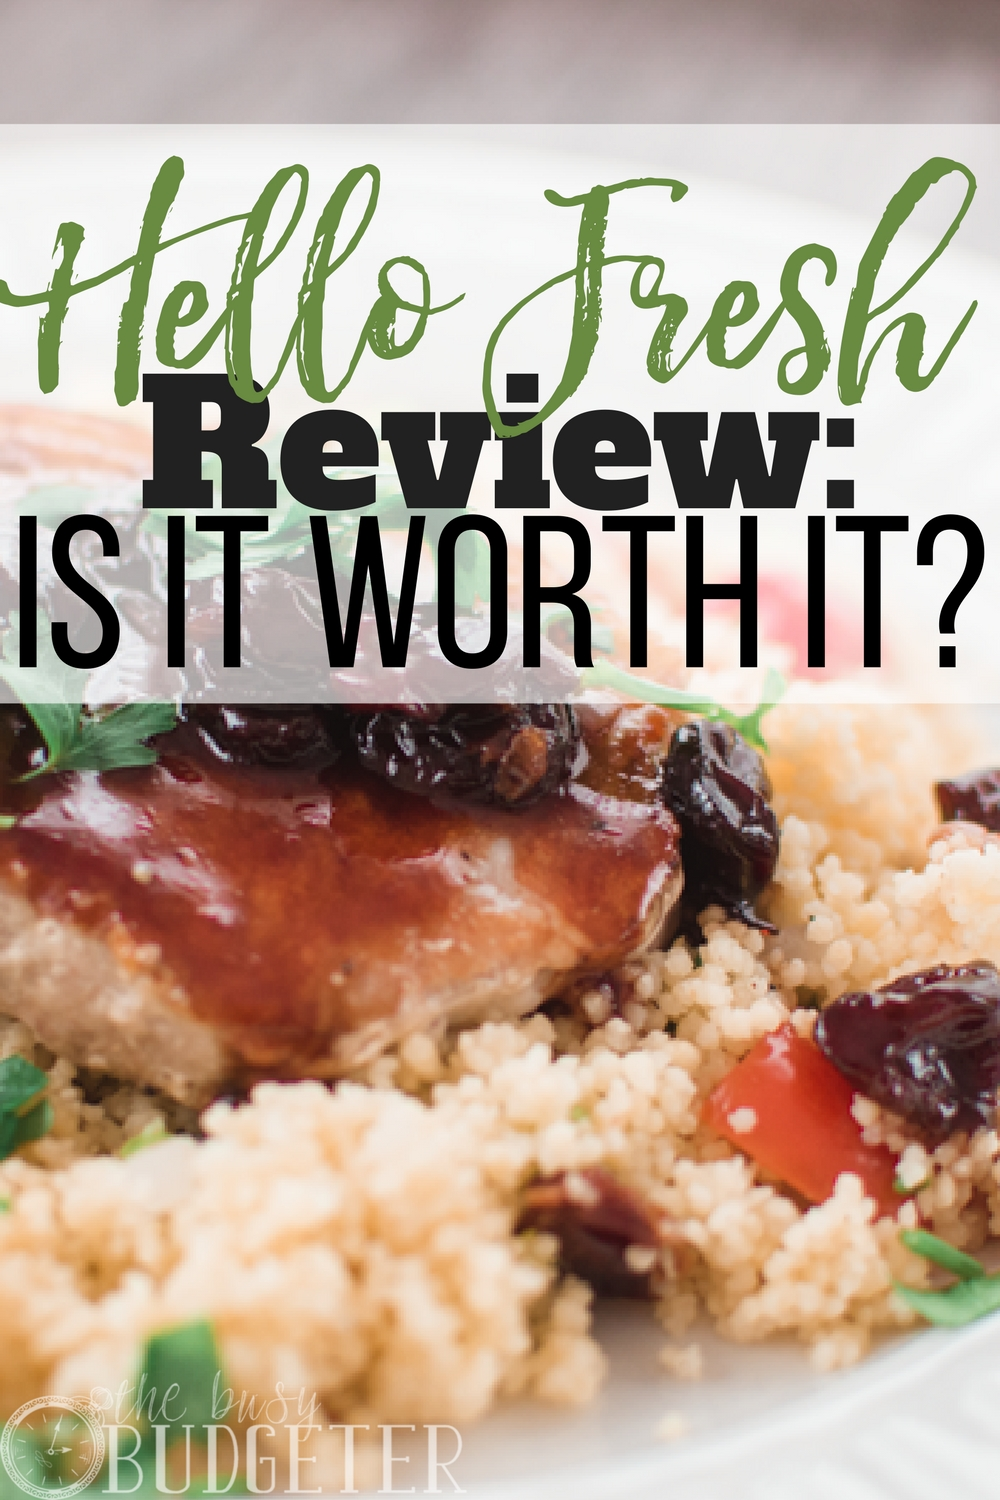 It's so refreshing to find such an honest Hello Fresh review! I've always wondered if this was worth it and if it would really help me with my grocery budget. I'm so glad I stopped to read this today!